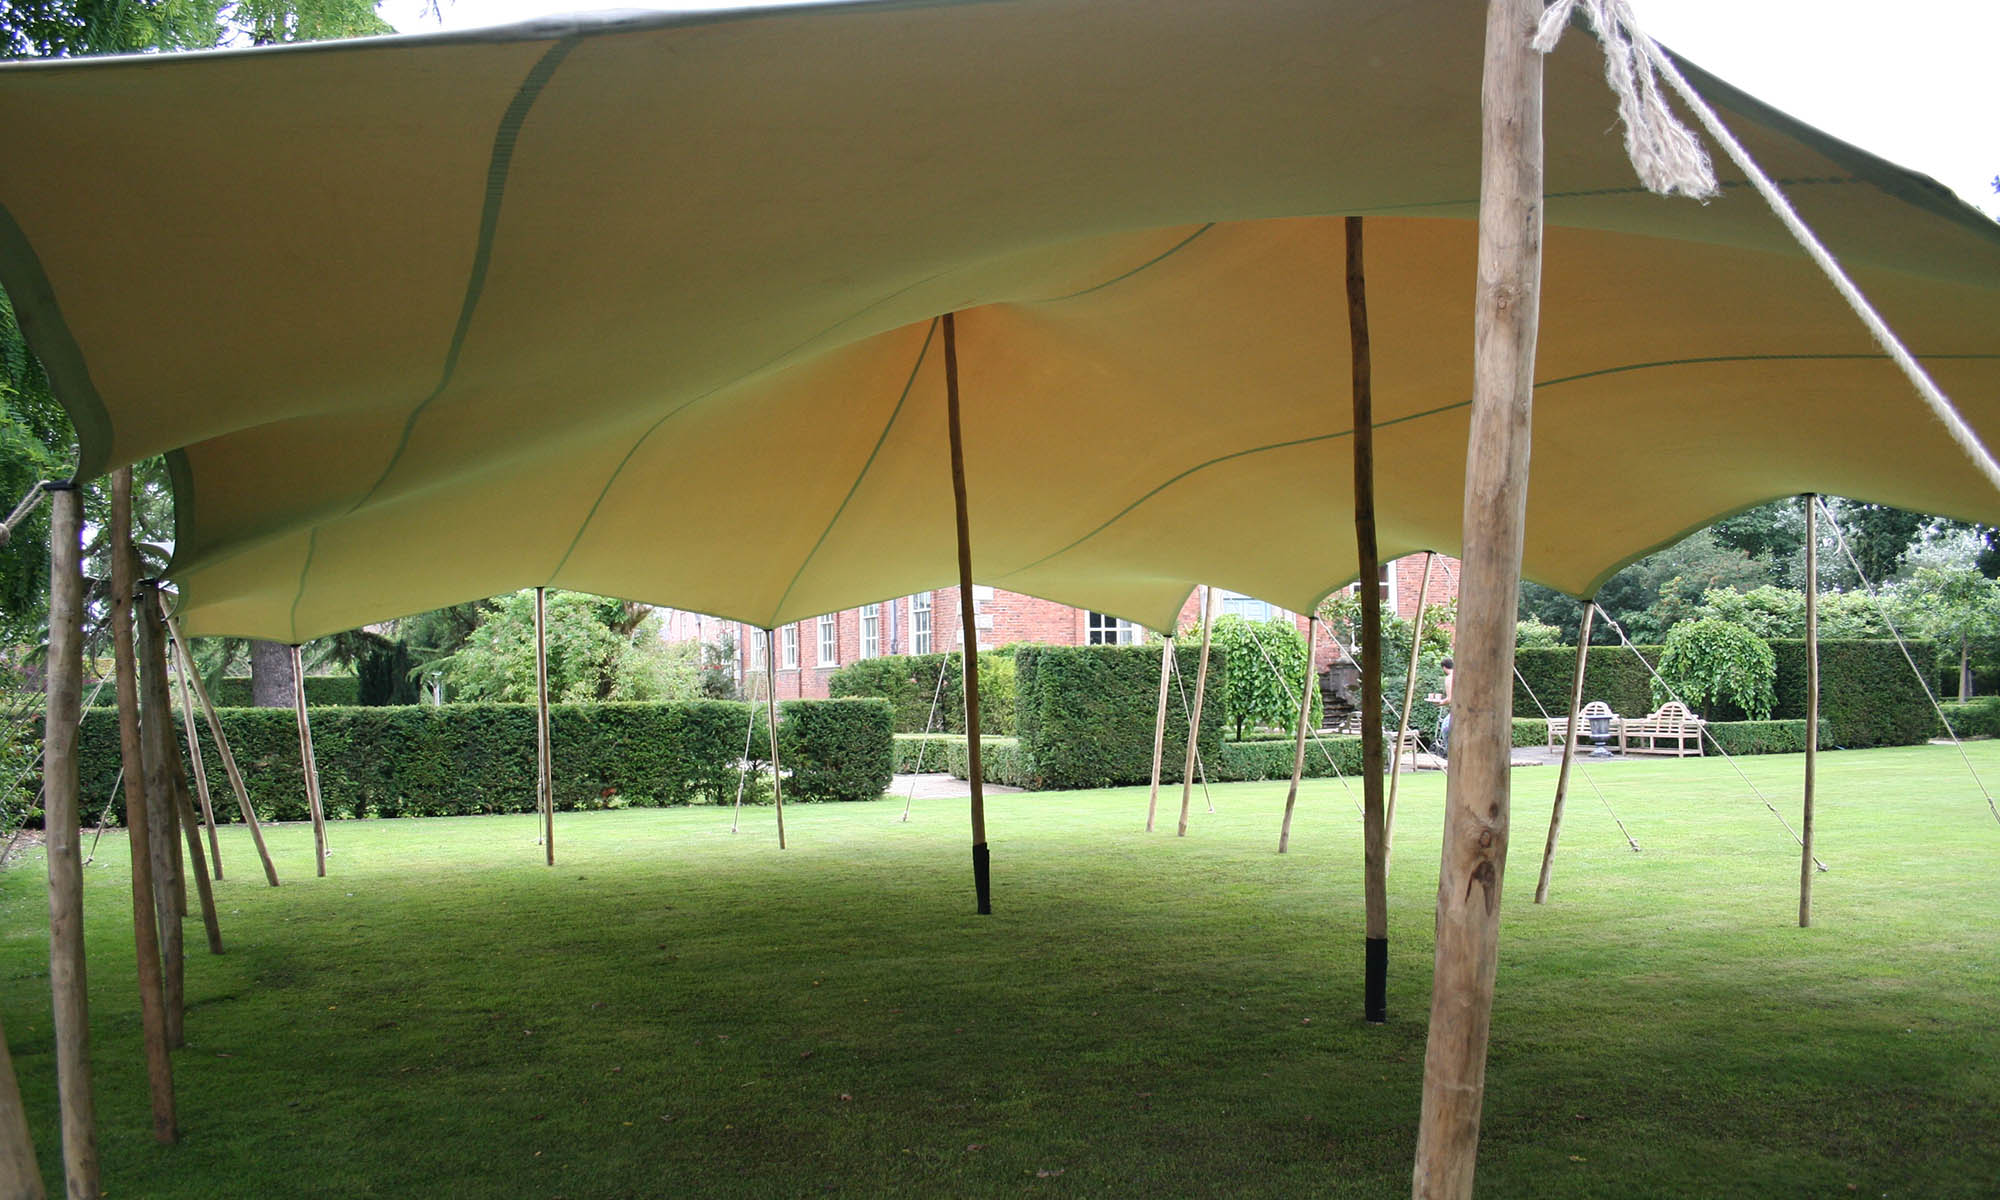 marquee wedding hire stretch tent hire wedding ceremony outdoor stretch marquee canopy bedouin tent